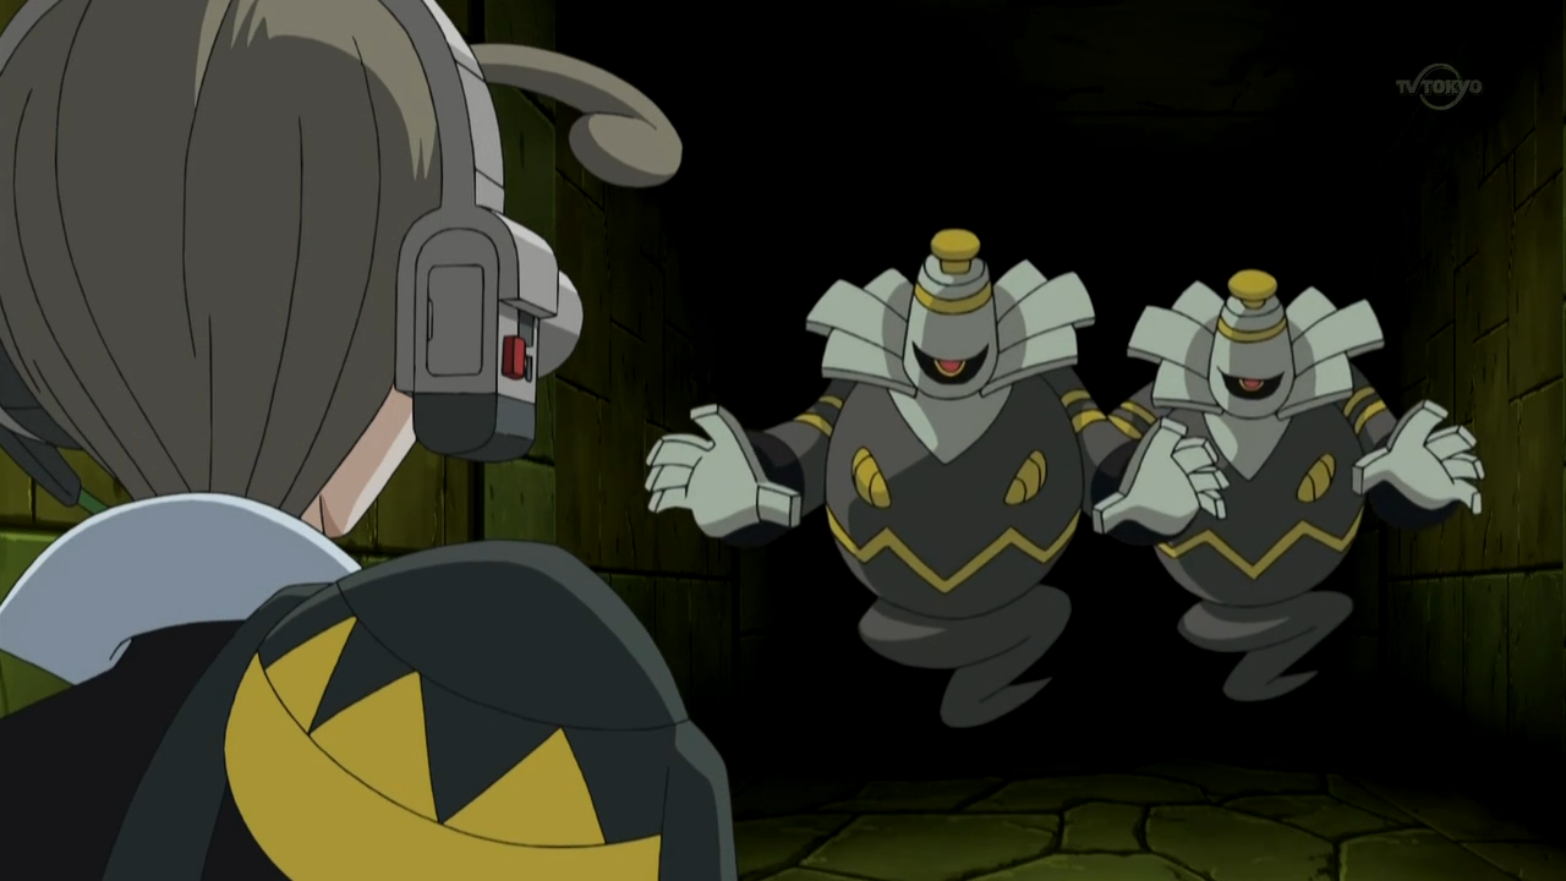 Conley fought and calmed down the two Dusknoir, who are guardians of the arena.